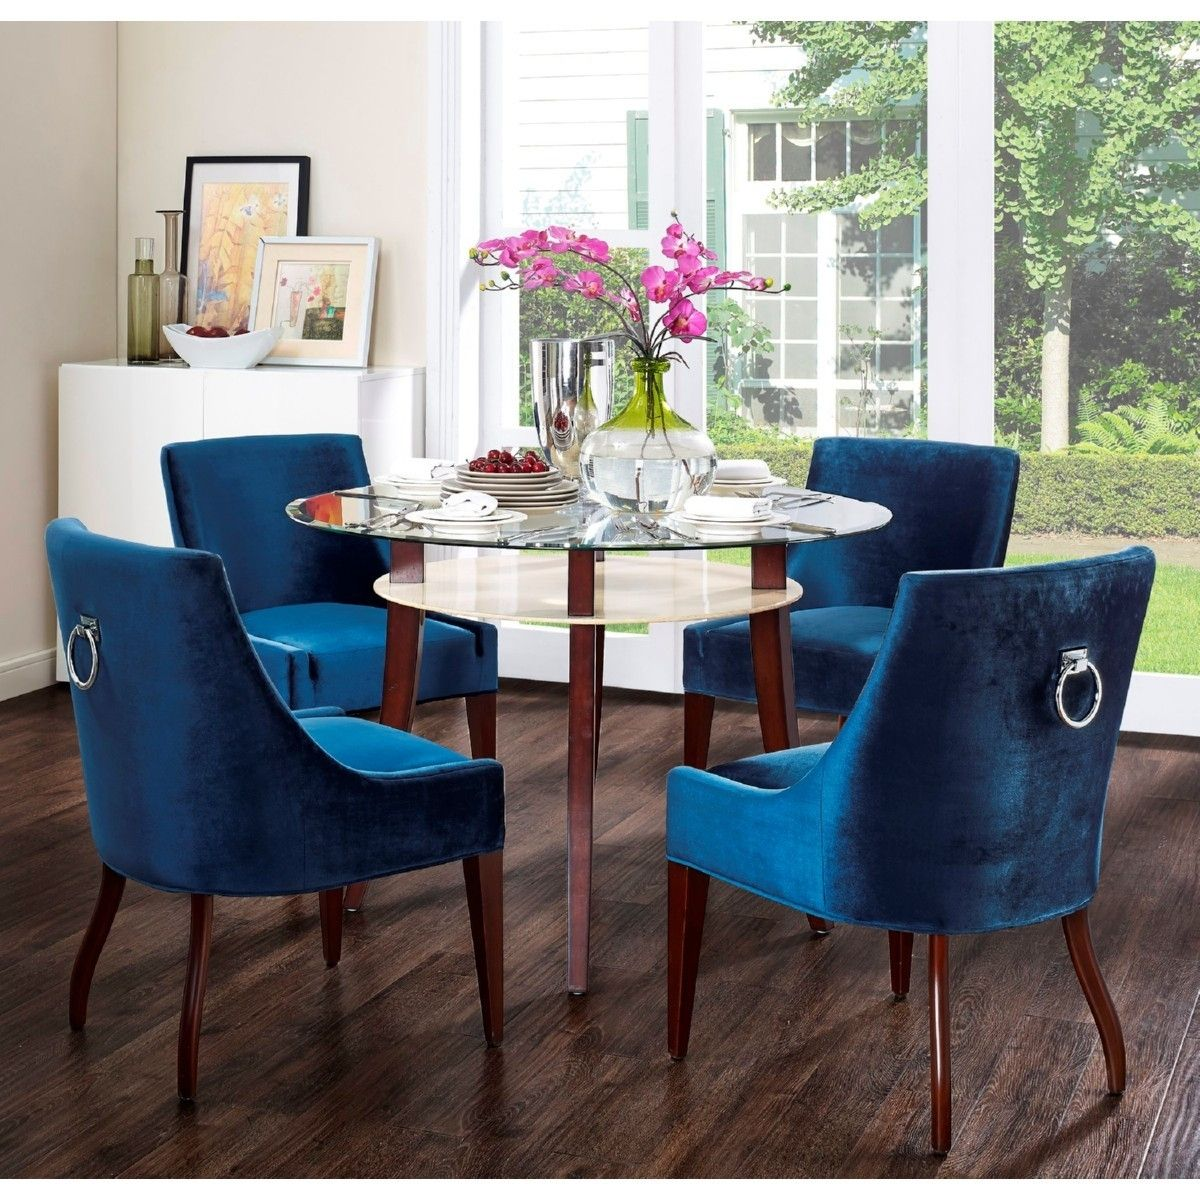 20 turquoise leather dining chairs modern furniture cheap check more at http